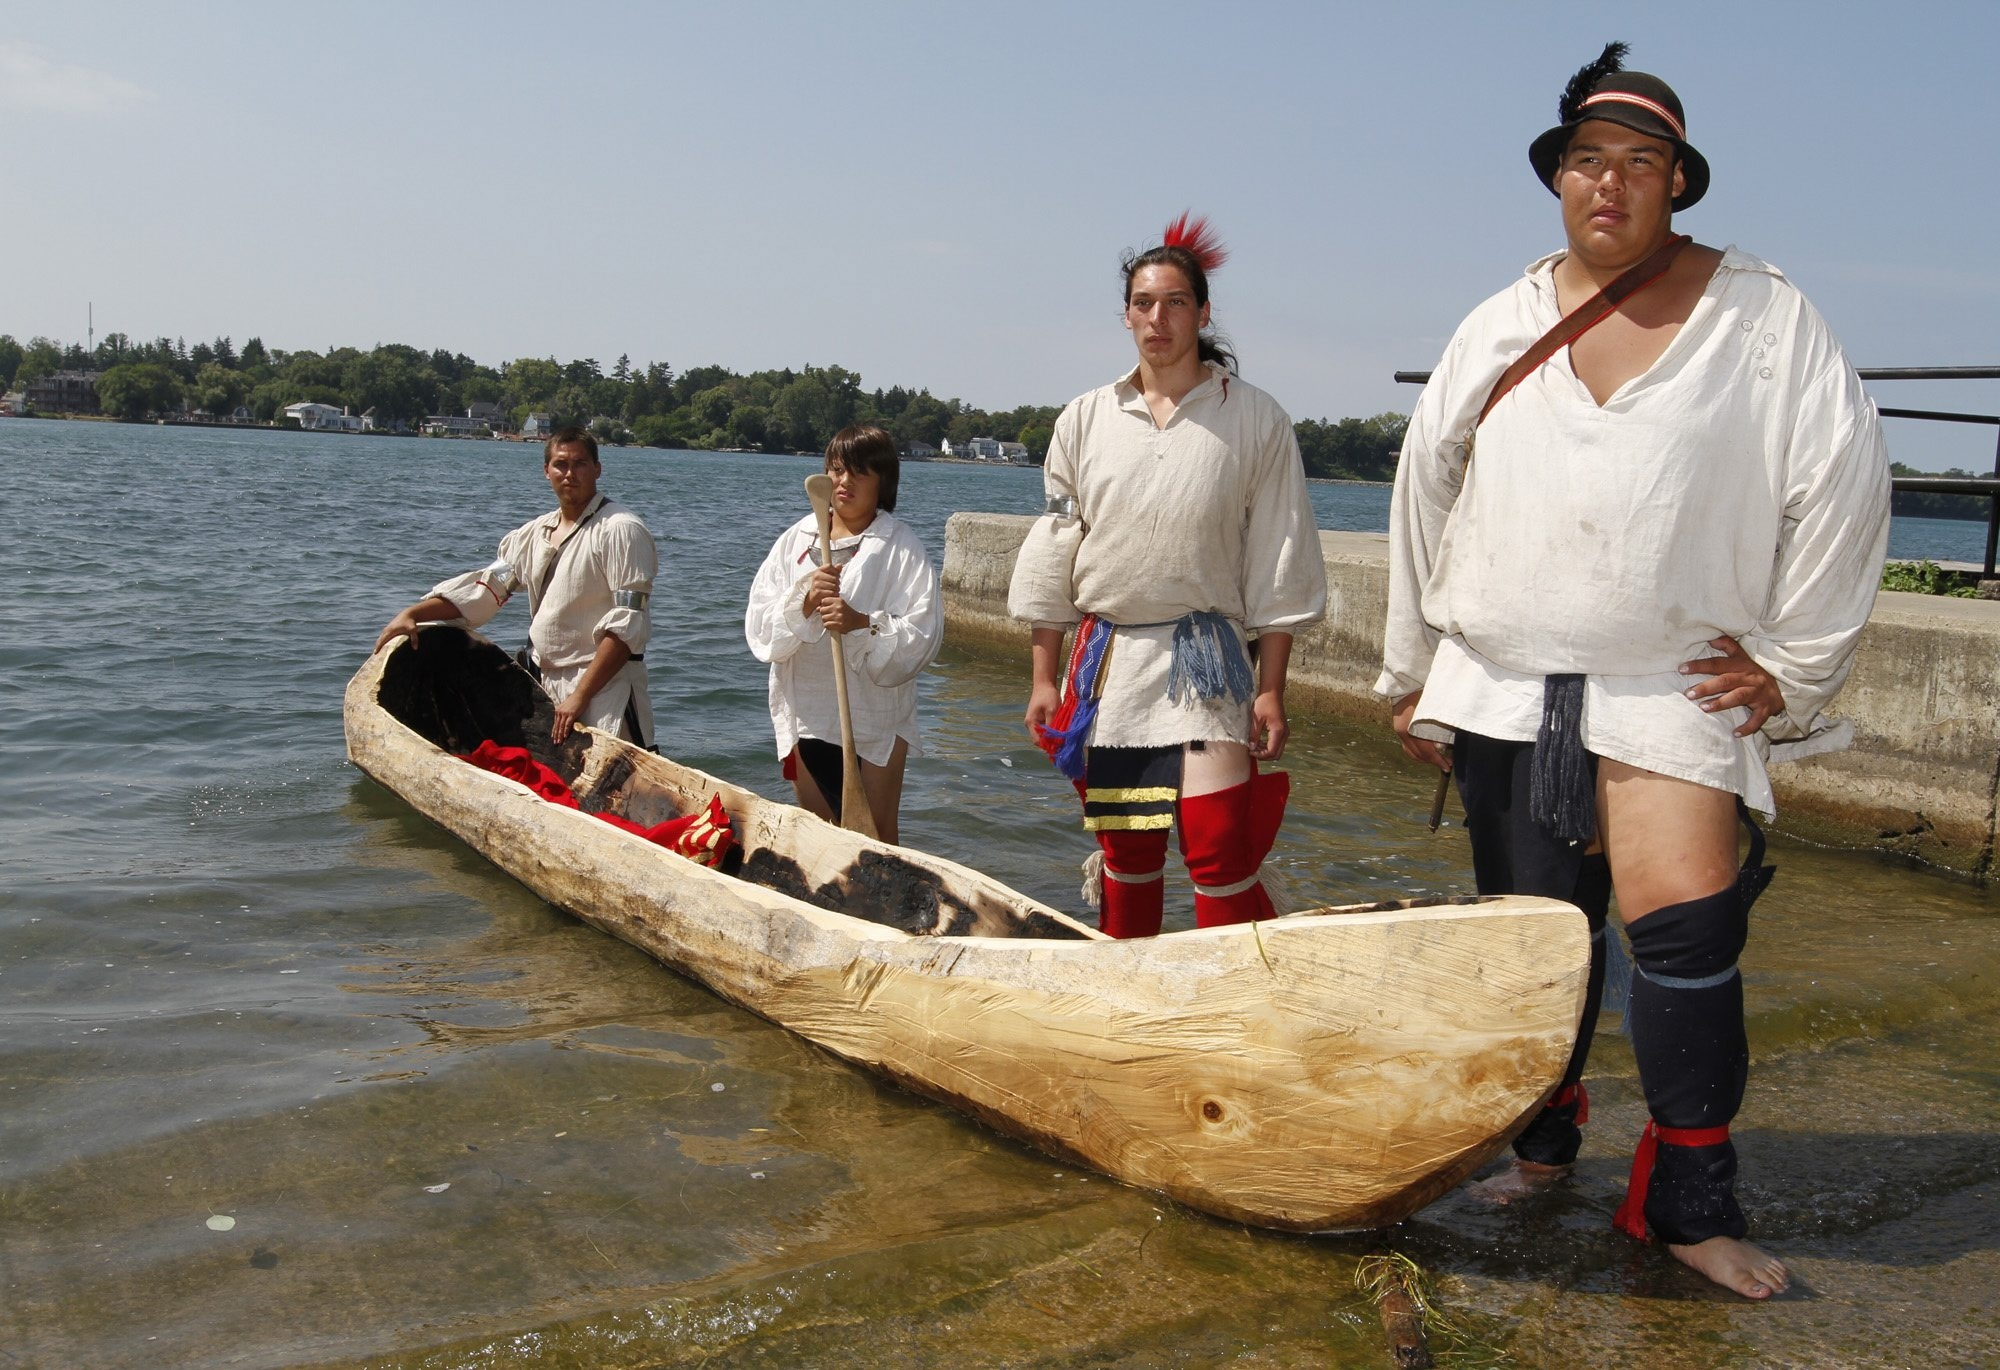 Native Americans Jacob Henry and Aidan Patterson, 11, left, paddled a dugout canoe on Tuesday. It was built by historical interpreters Marlin Wilson (Tuscarora) and Hawk Robinson (Seneca) built from scratch. See a photo gallery at BuffaloNews.com.